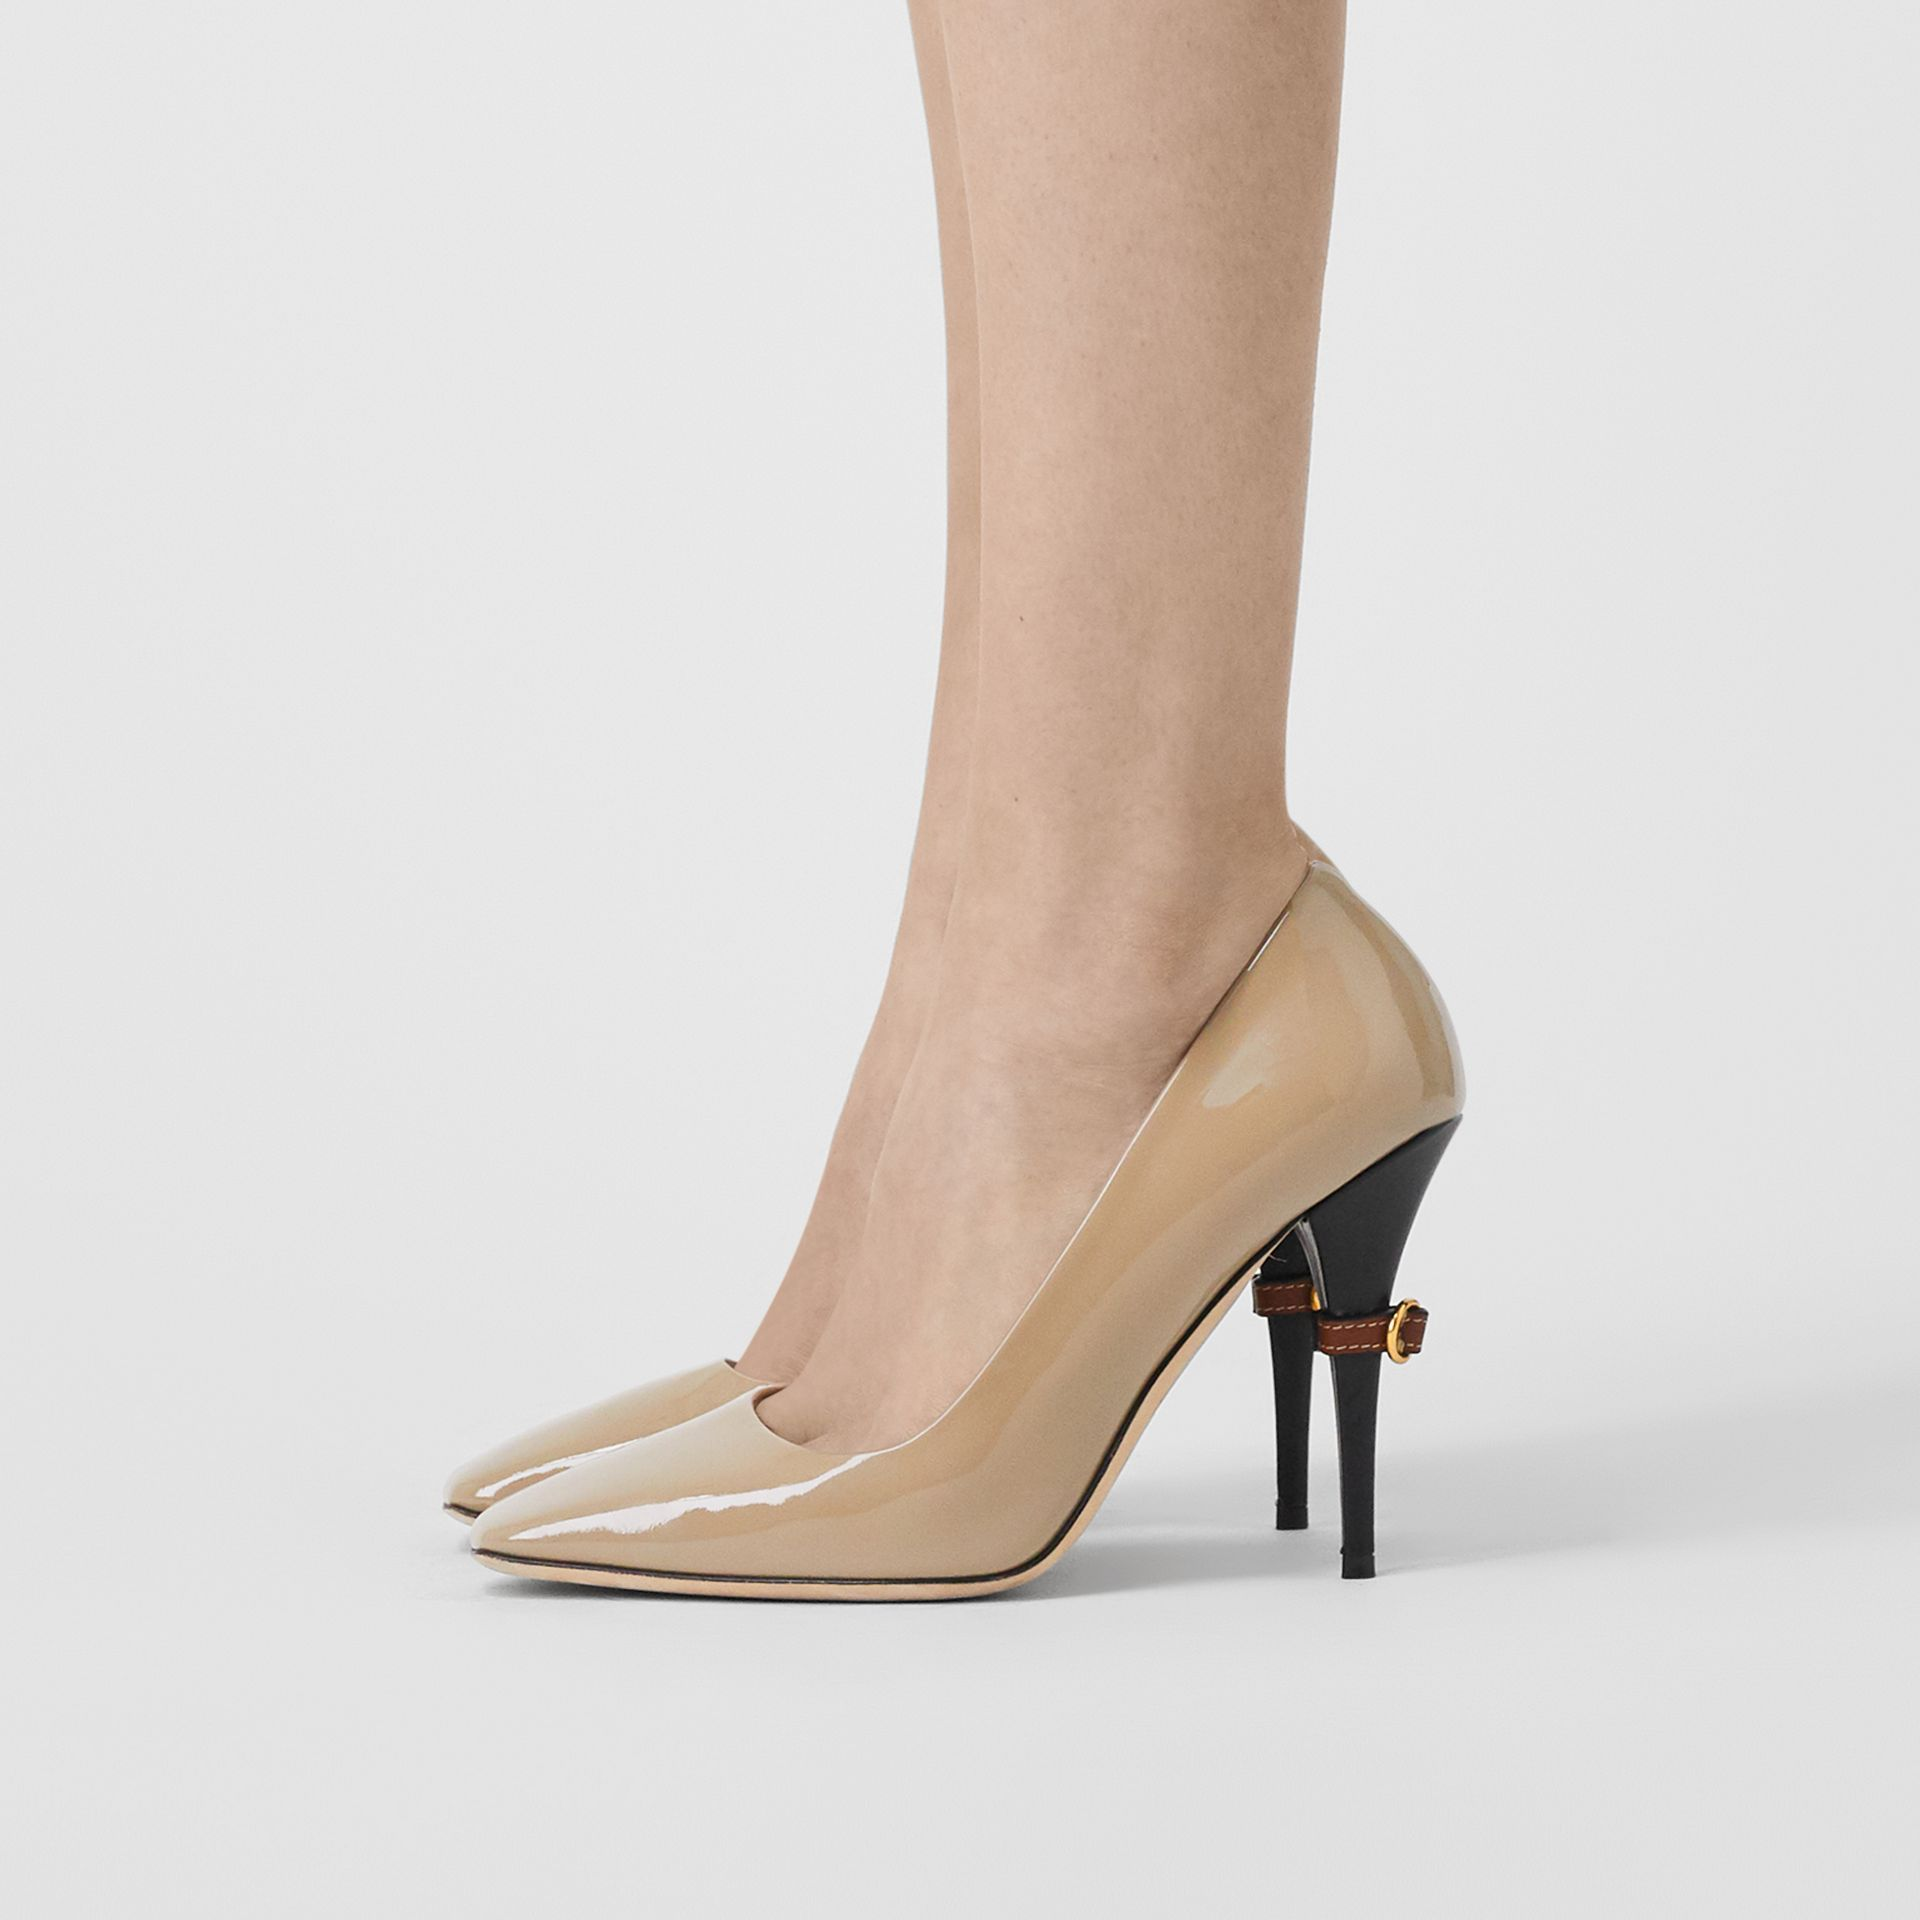 D-ring Detail Patent Leather Square-toe Pumps in Dark Honey - Women | Burberry United Kingdom - gallery image 2